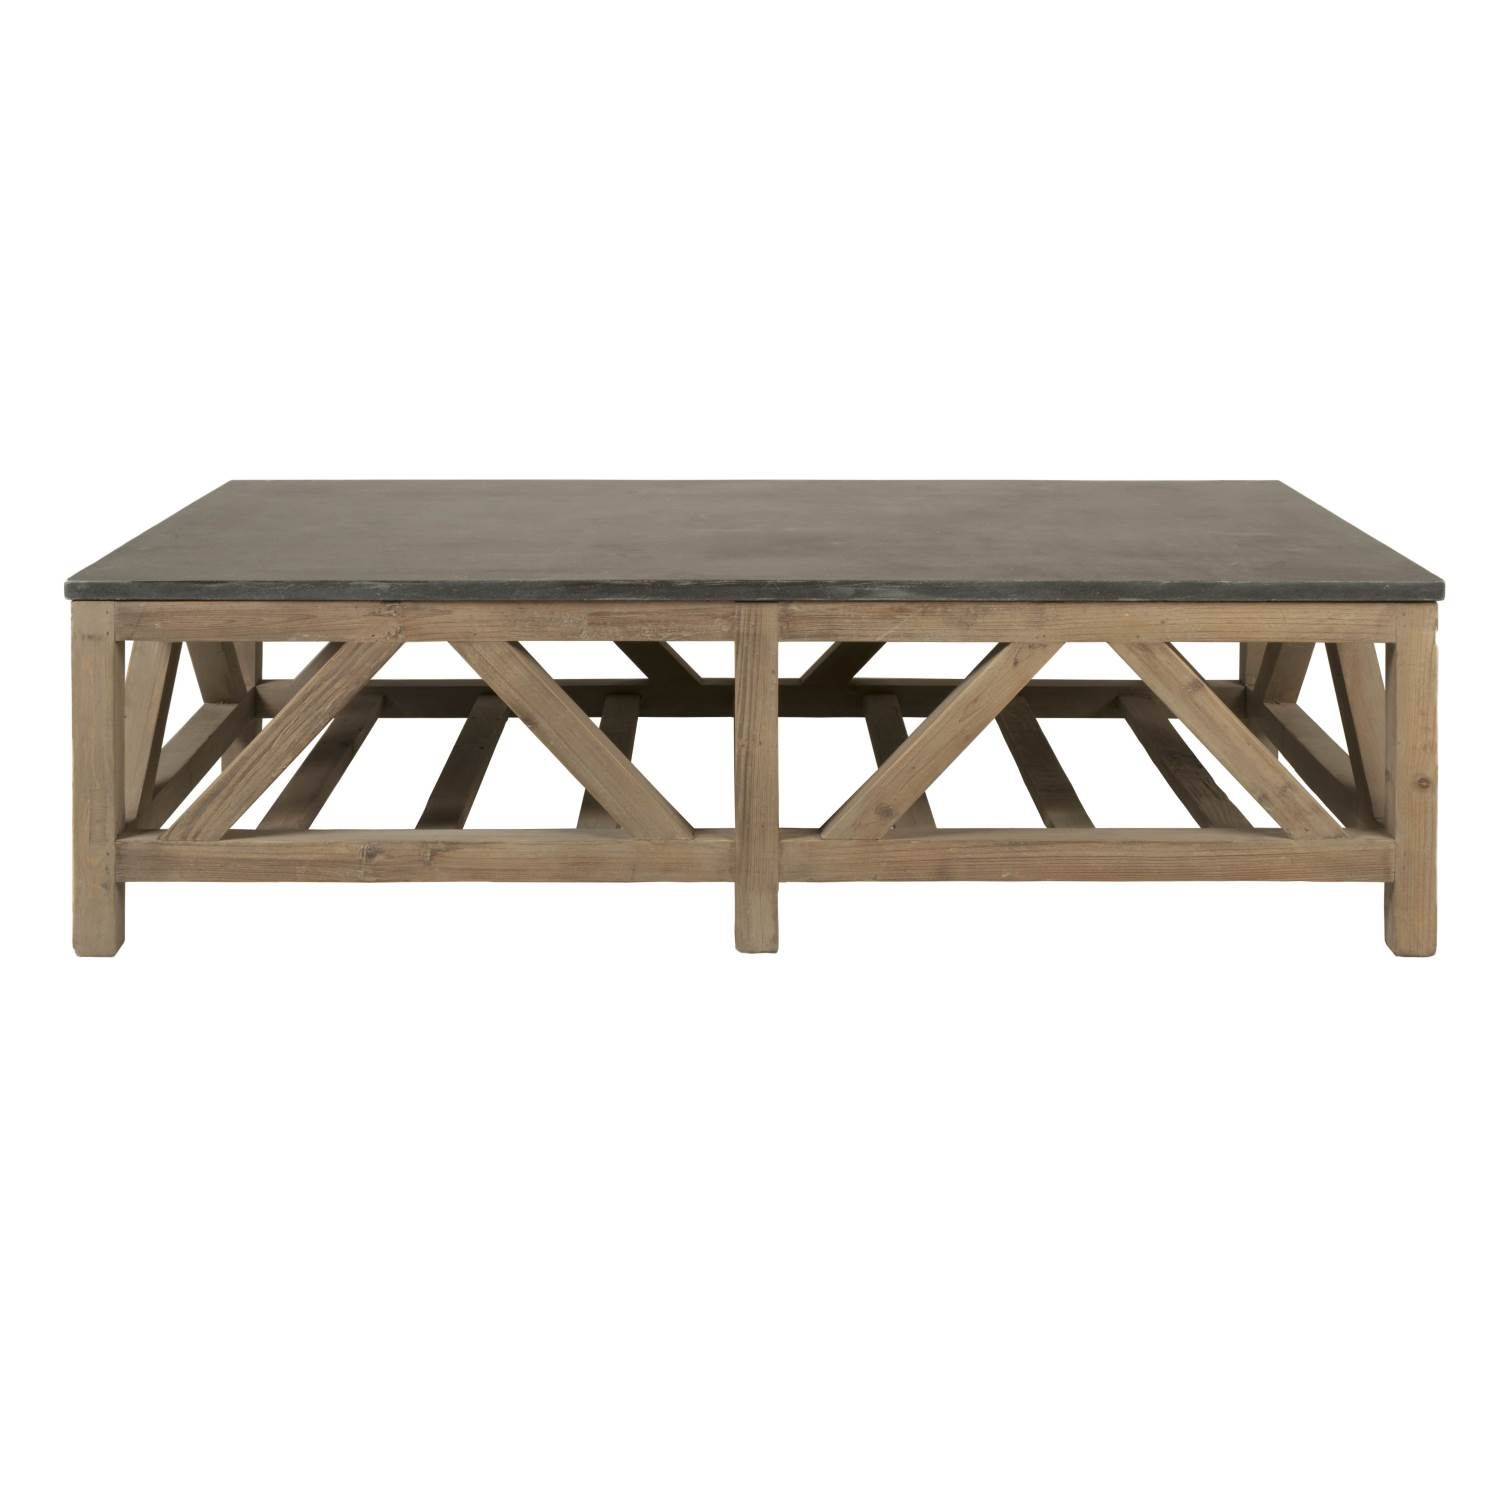 Blue stone coffee table w63 d355 h1775 1269 sale price the blue stone coffee table combines reclaimed pine wood with a rich blue stone table top and smoked gray finish this extra large coffee table will be the geotapseo Image collections